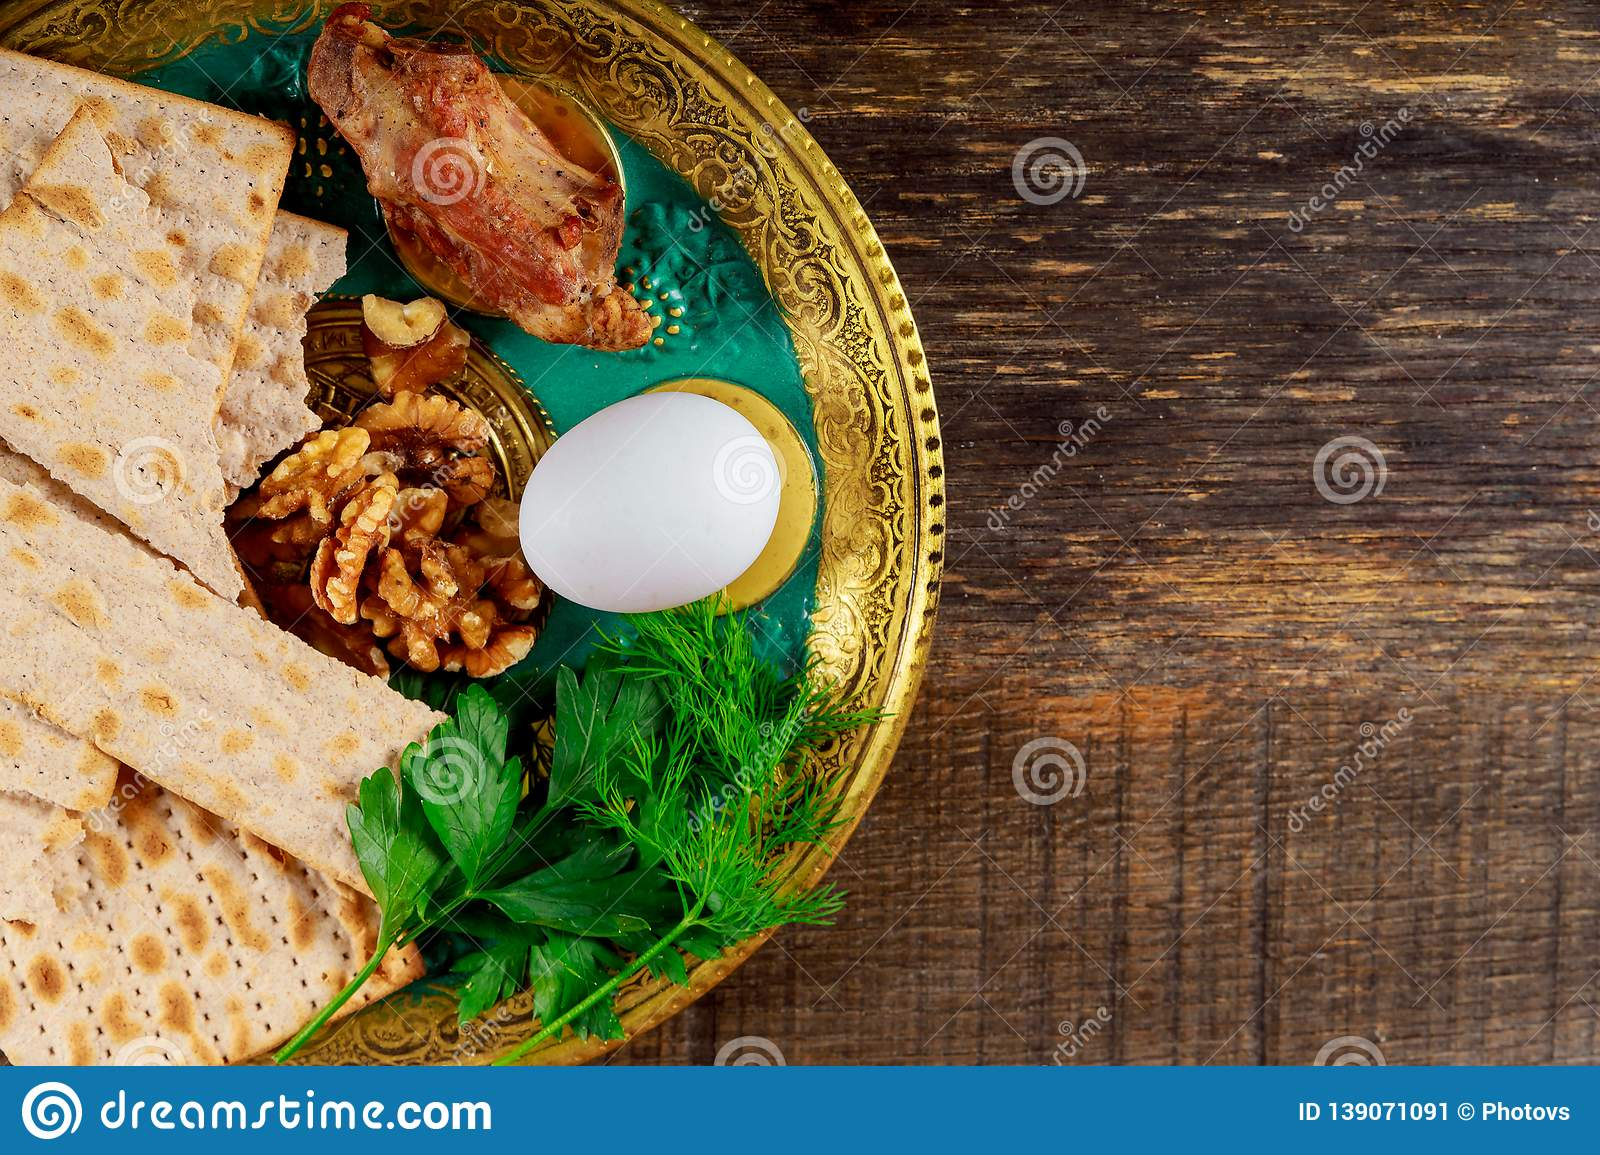 Matzo for Passover with Seder on plate on table close up